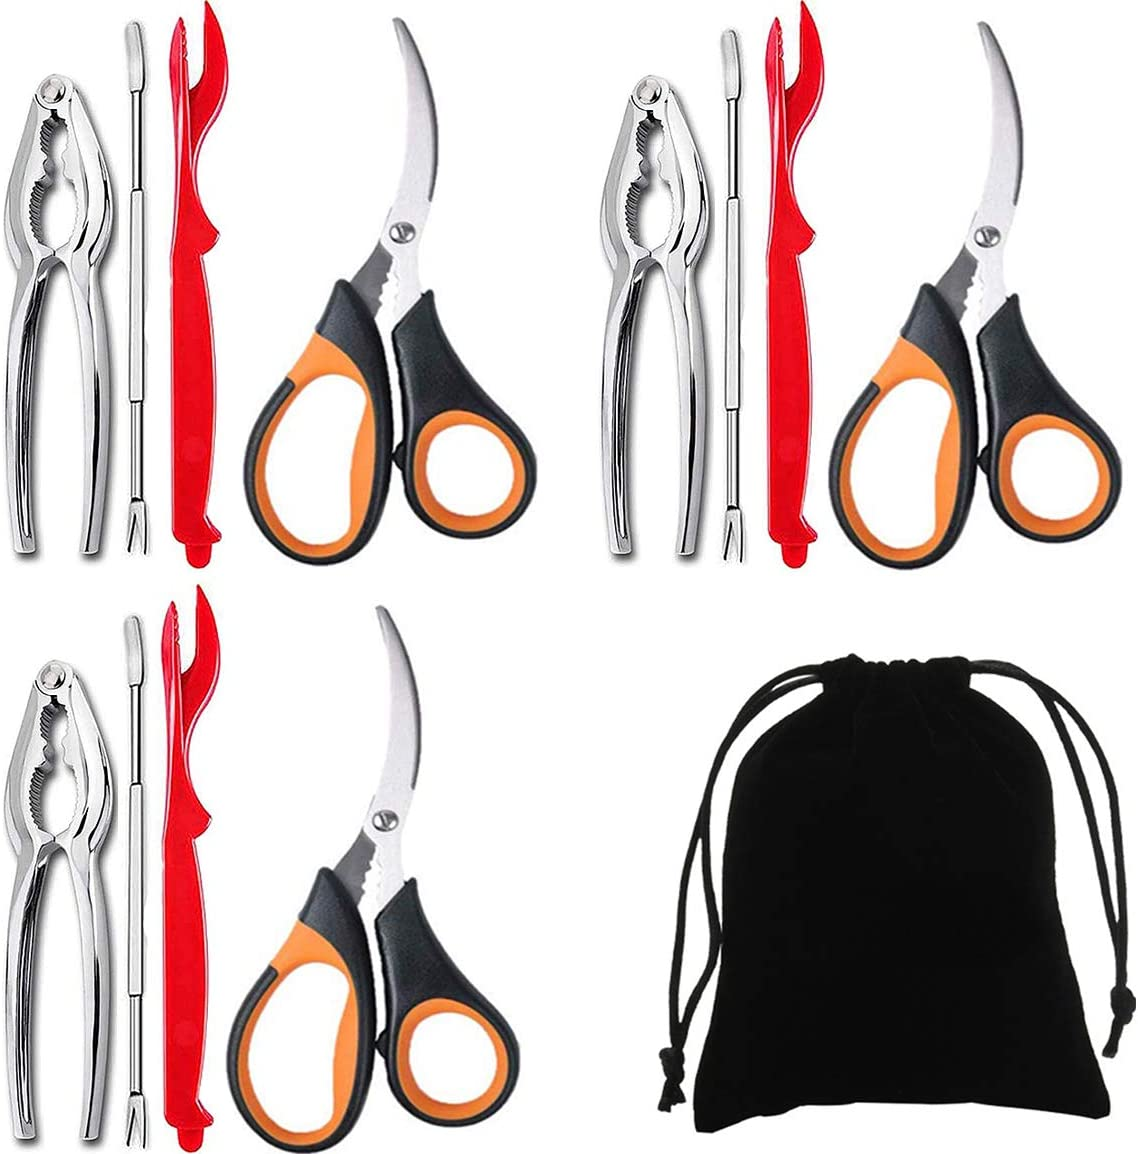 Artcome Daily bargain sale 13 Piece Seafood Tools Set Crab for 3 including People Max 90% OFF